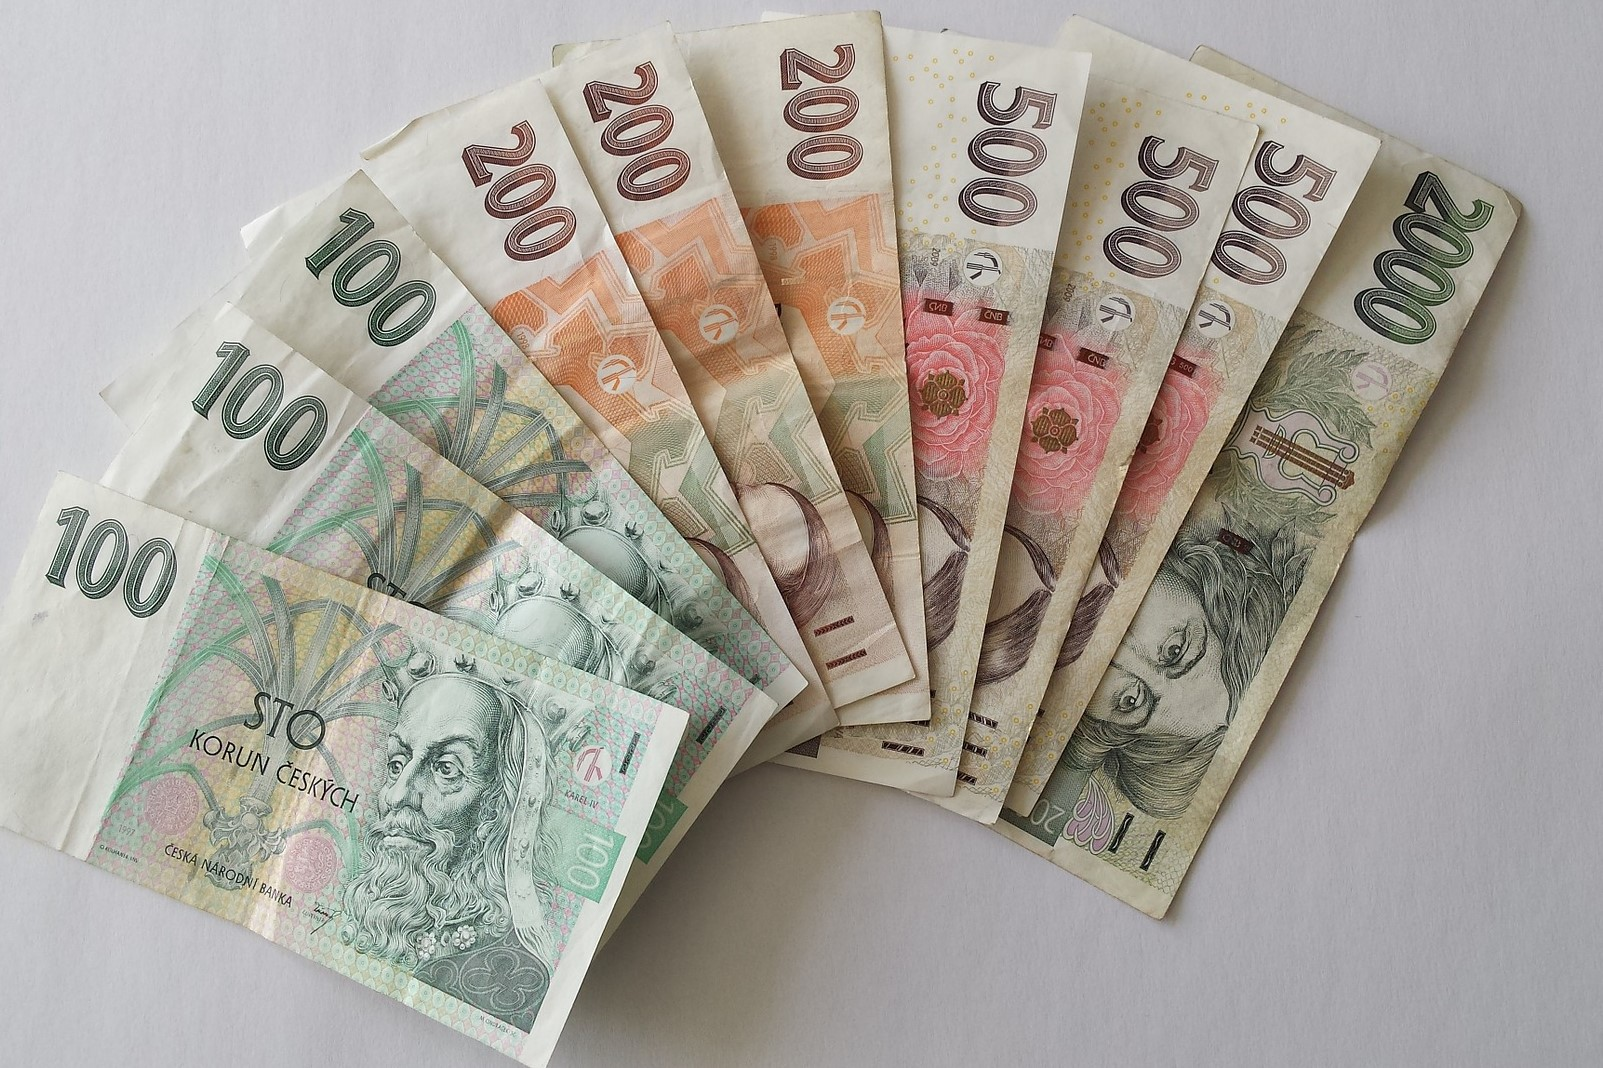 Czech money is called koruna and comes in various denominations.